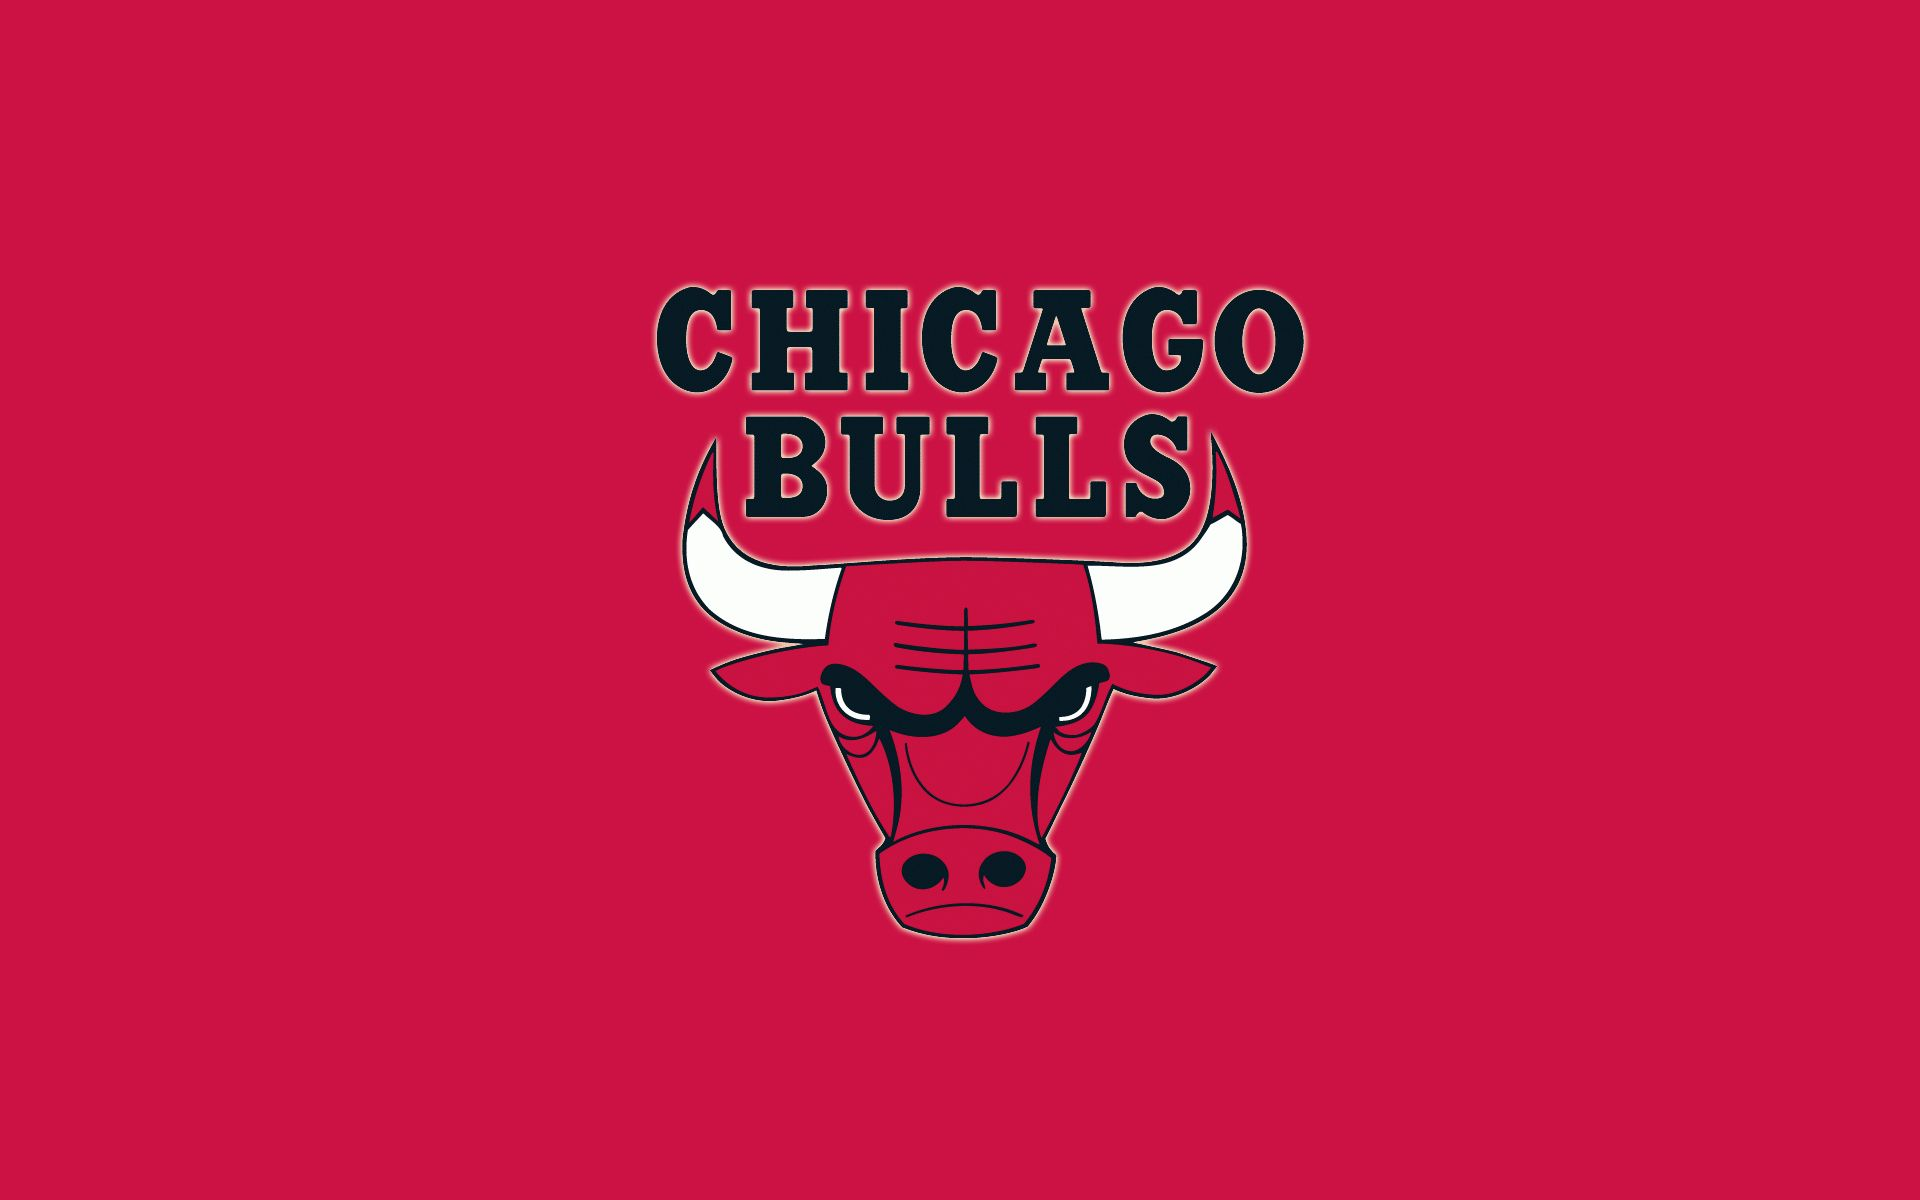 Great year so far sports pinterest bulls wallpaper and chicago bulls wallpapers for pc desktop voltagebd Images